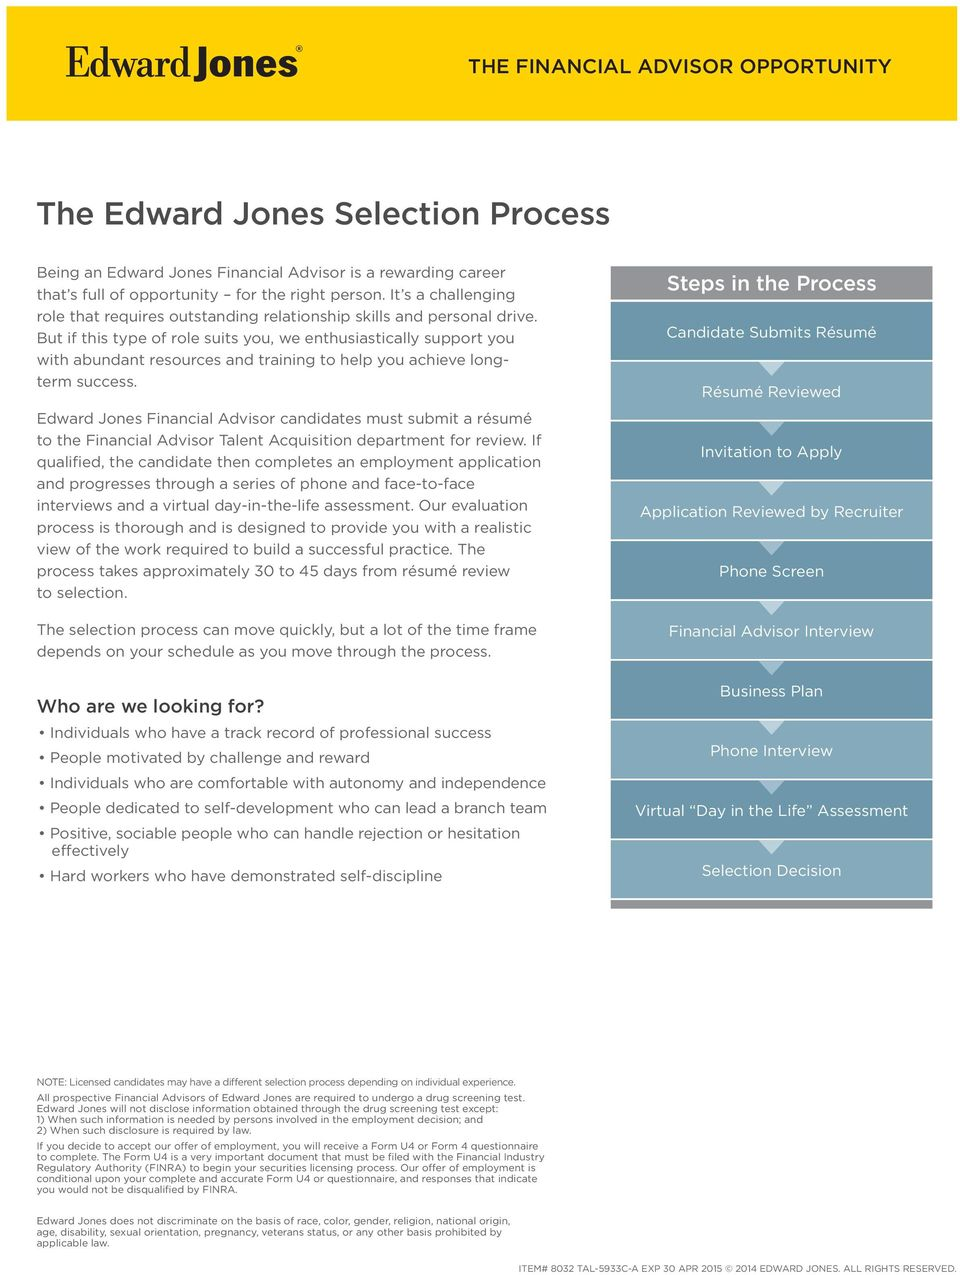 edward jones business plan